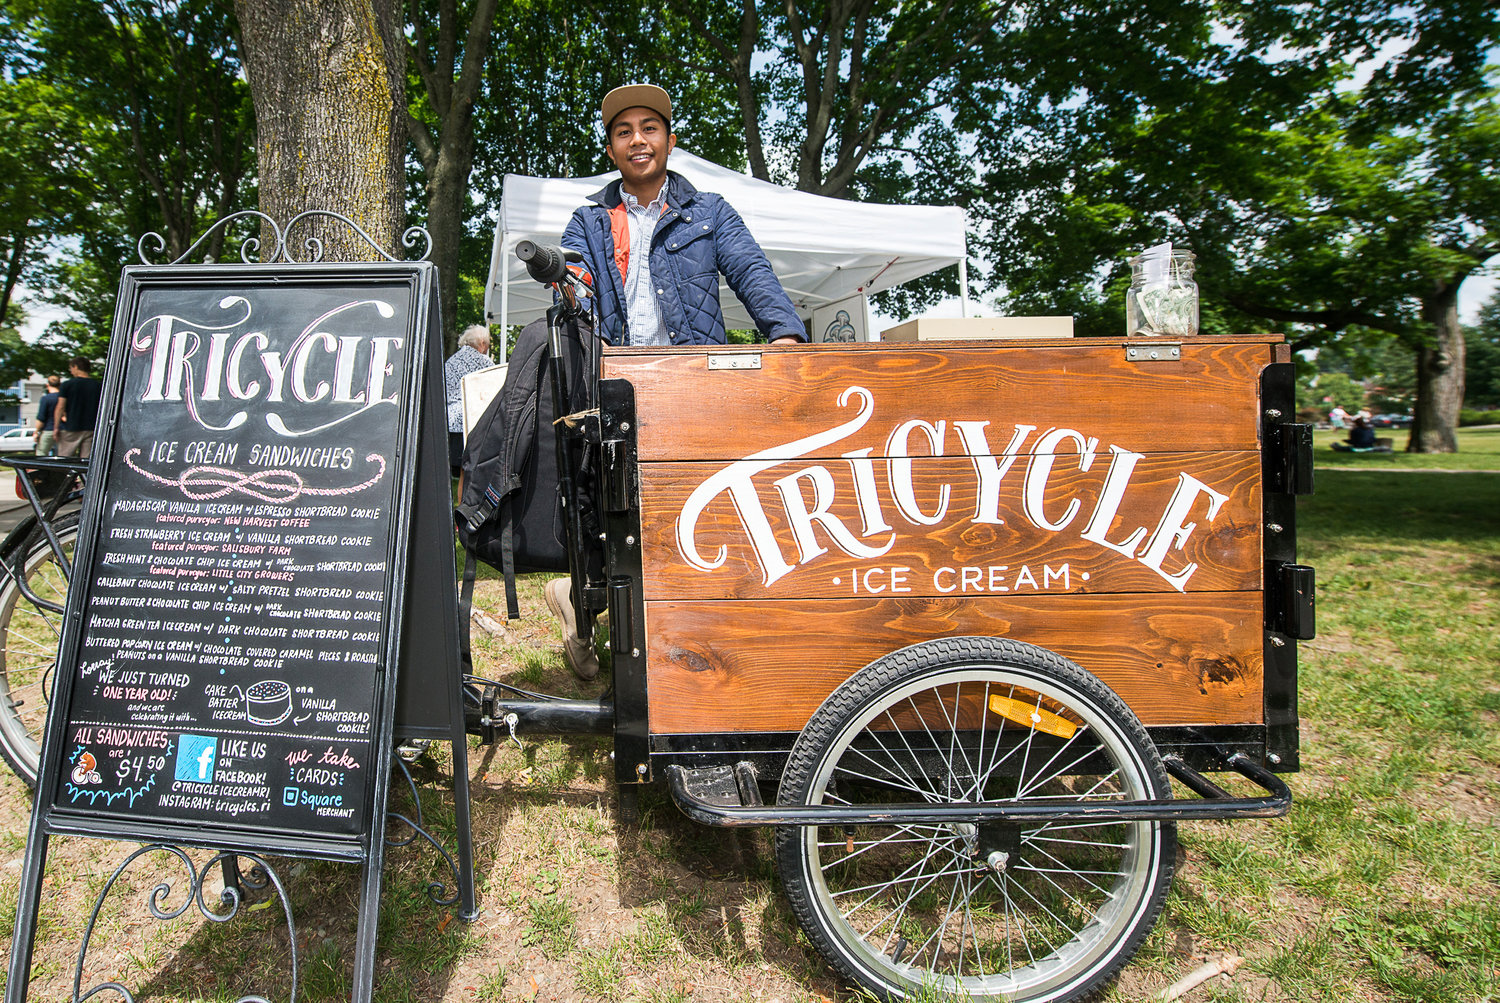 Tricycle Ice Cream